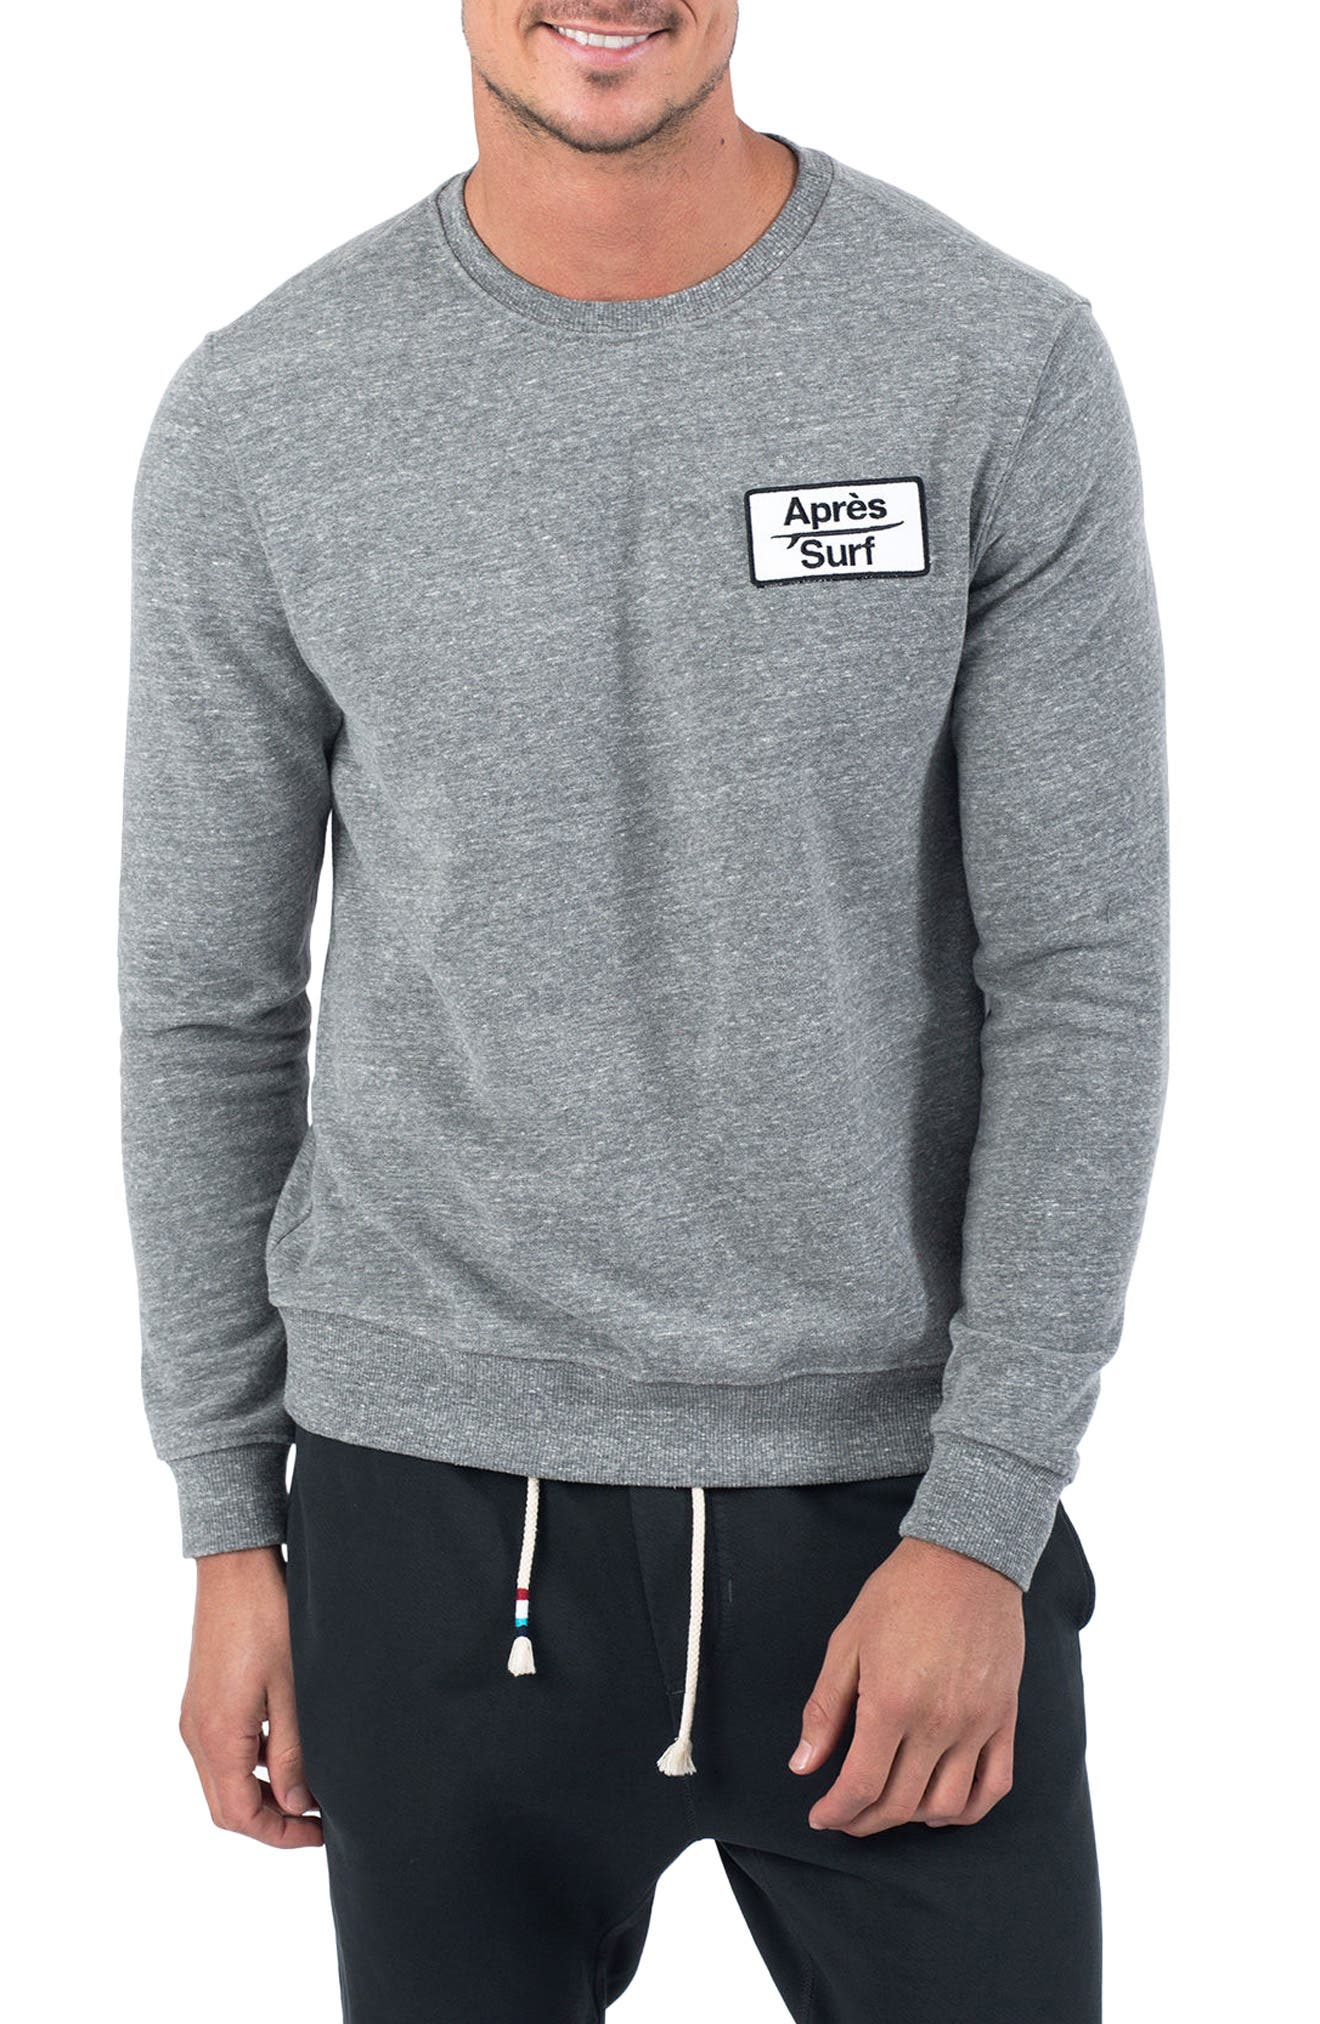 Aprés Surf Sweatshirt,                         Main,                         color, Heather Grey